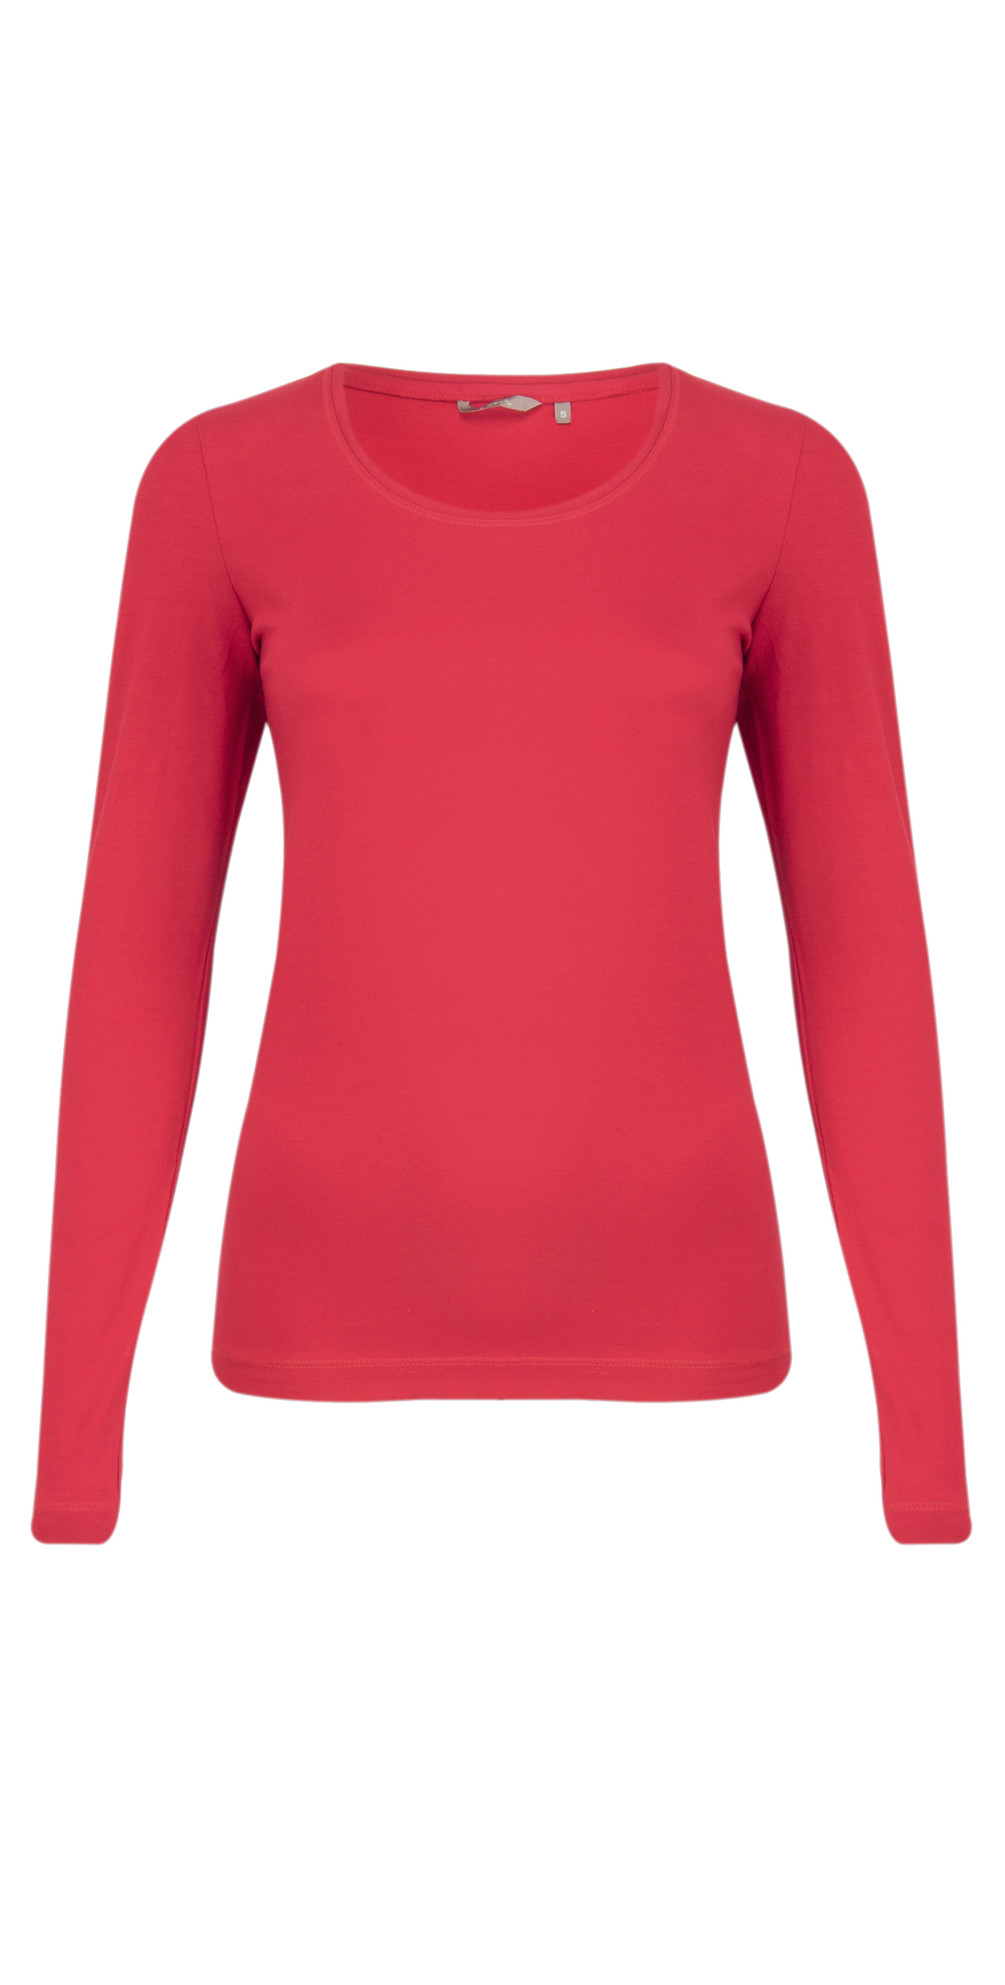 Sandwich clothing light cotton elastane t shirt in crimson for Cotton and elastane t shirts